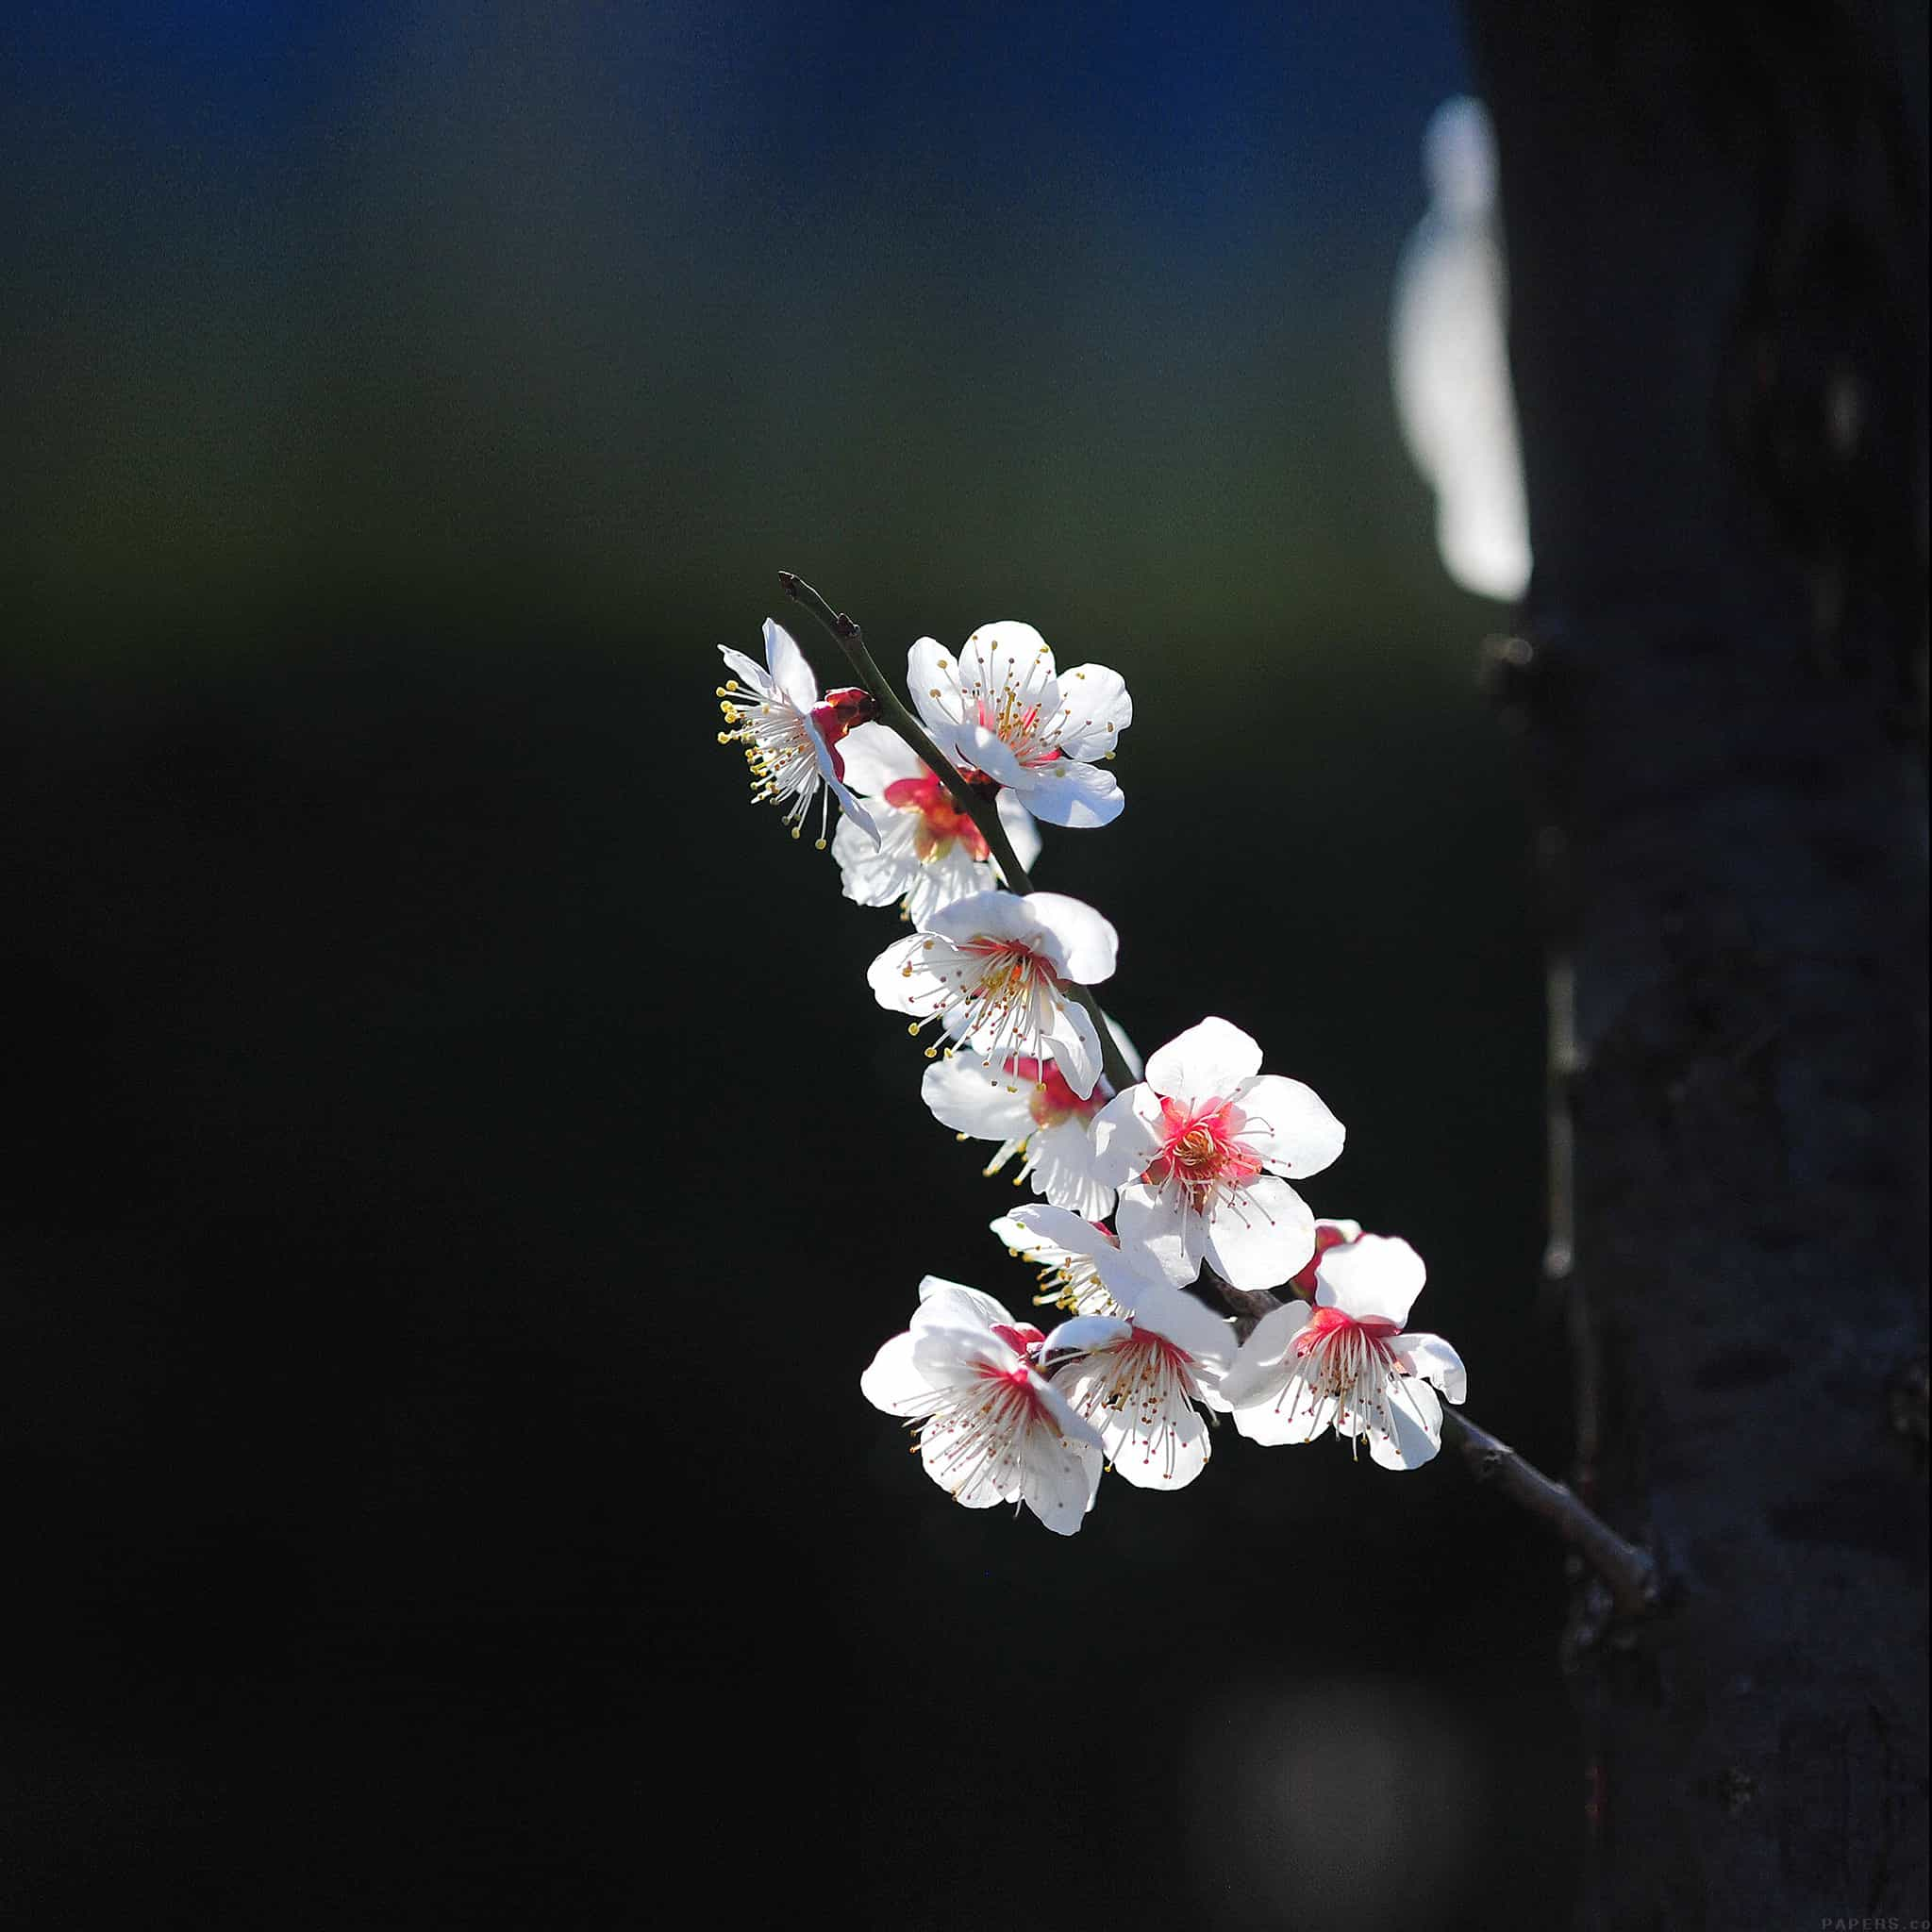 Papers.co-mq22-spring-flower-sakura-nature-tree-android-medium